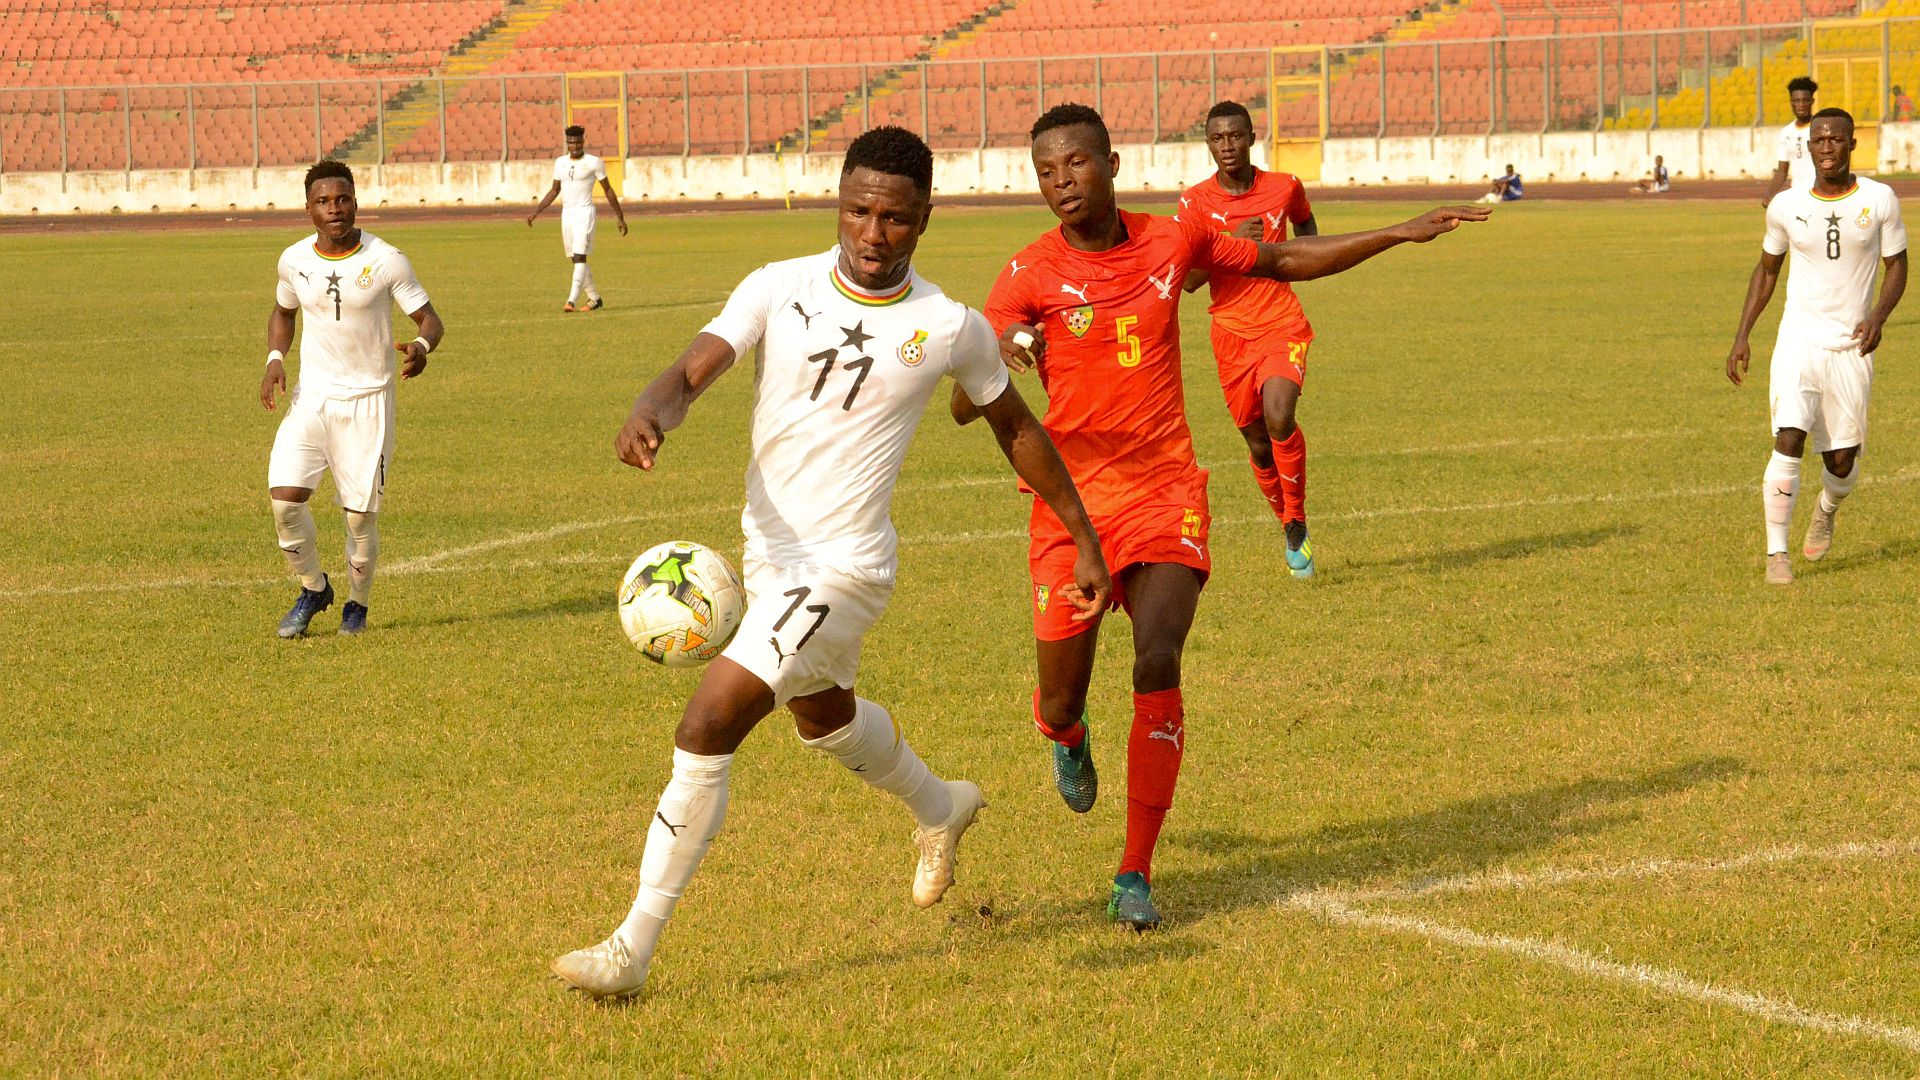 U23 Afcon Qualifier Match Report: Ghana 1-1 Algeria - Black Meteors held in Accra